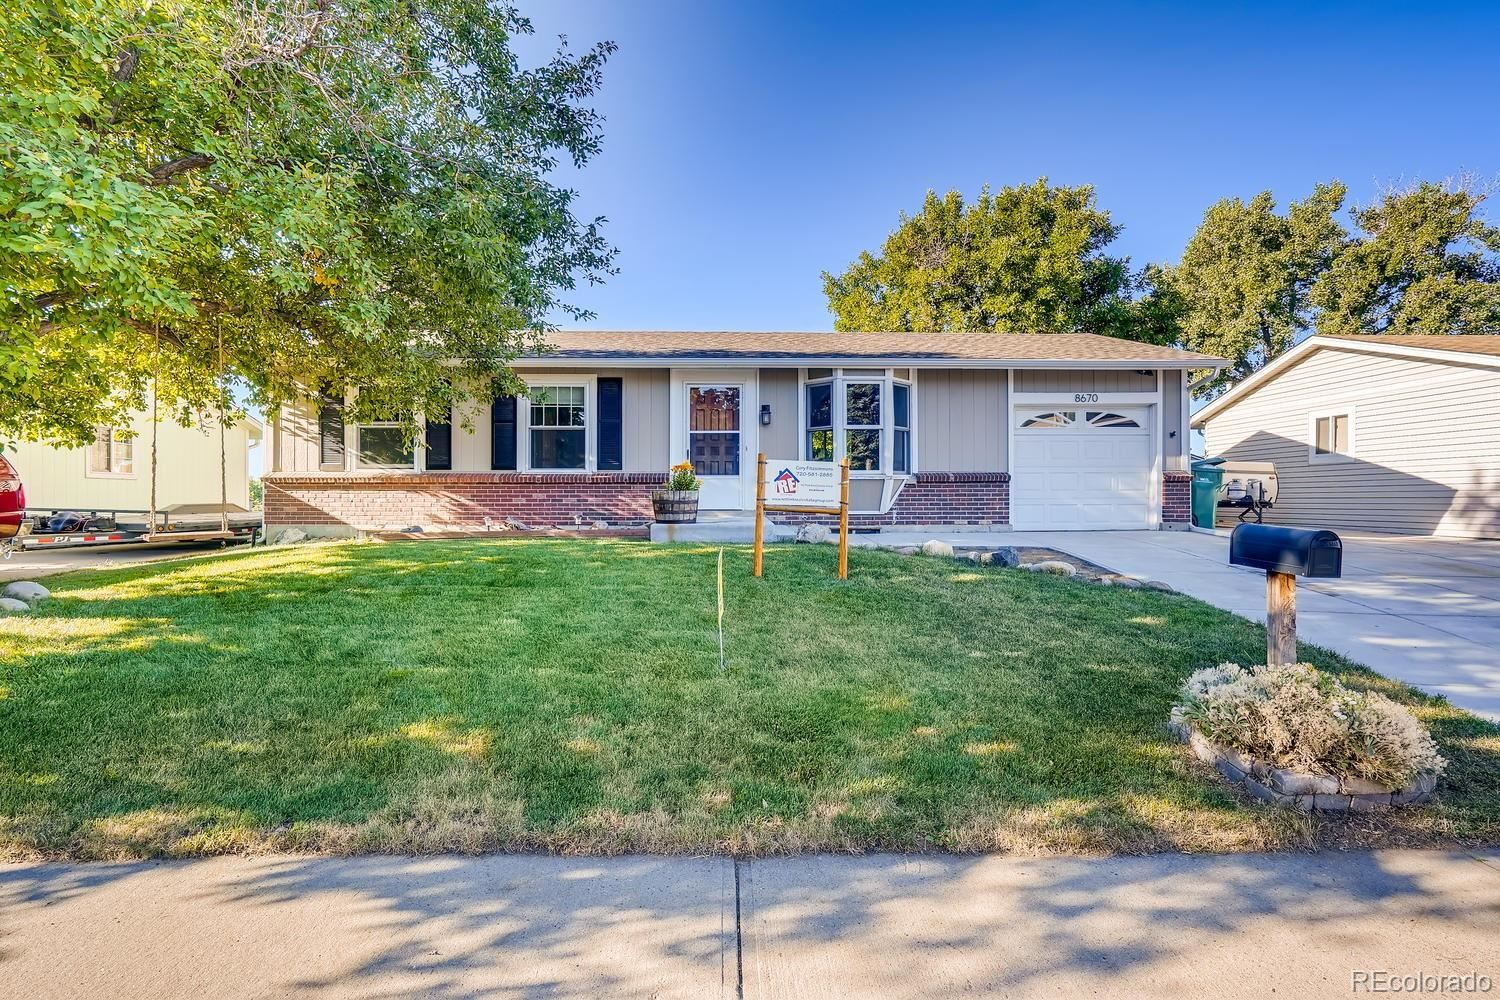 8670 W 88th Place, Westminster, CO 80021 - #: 4577523